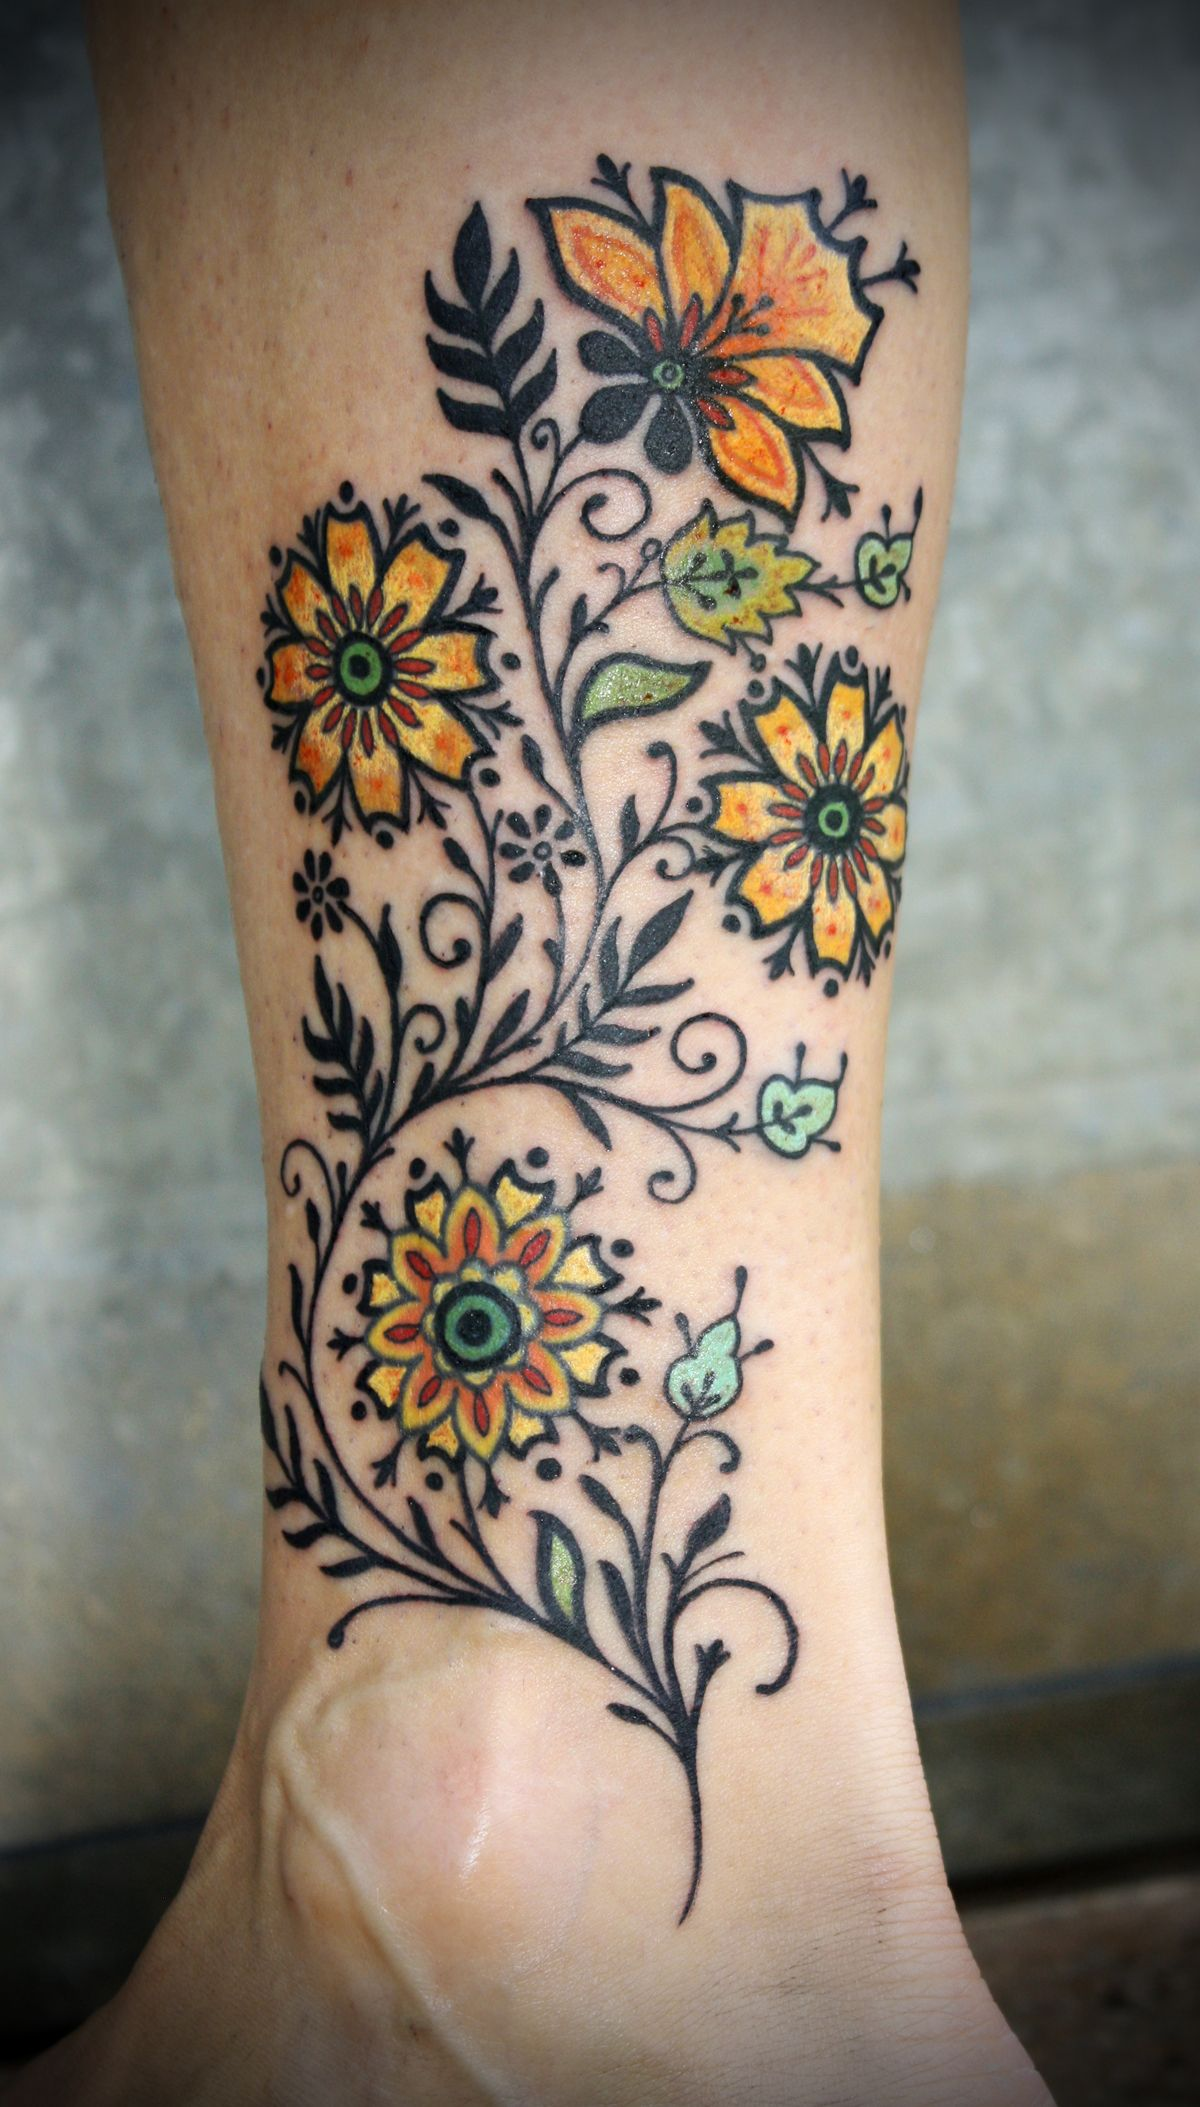 Unusual Flowers Tattoos Inspirational Tattoos Leg Tattoos